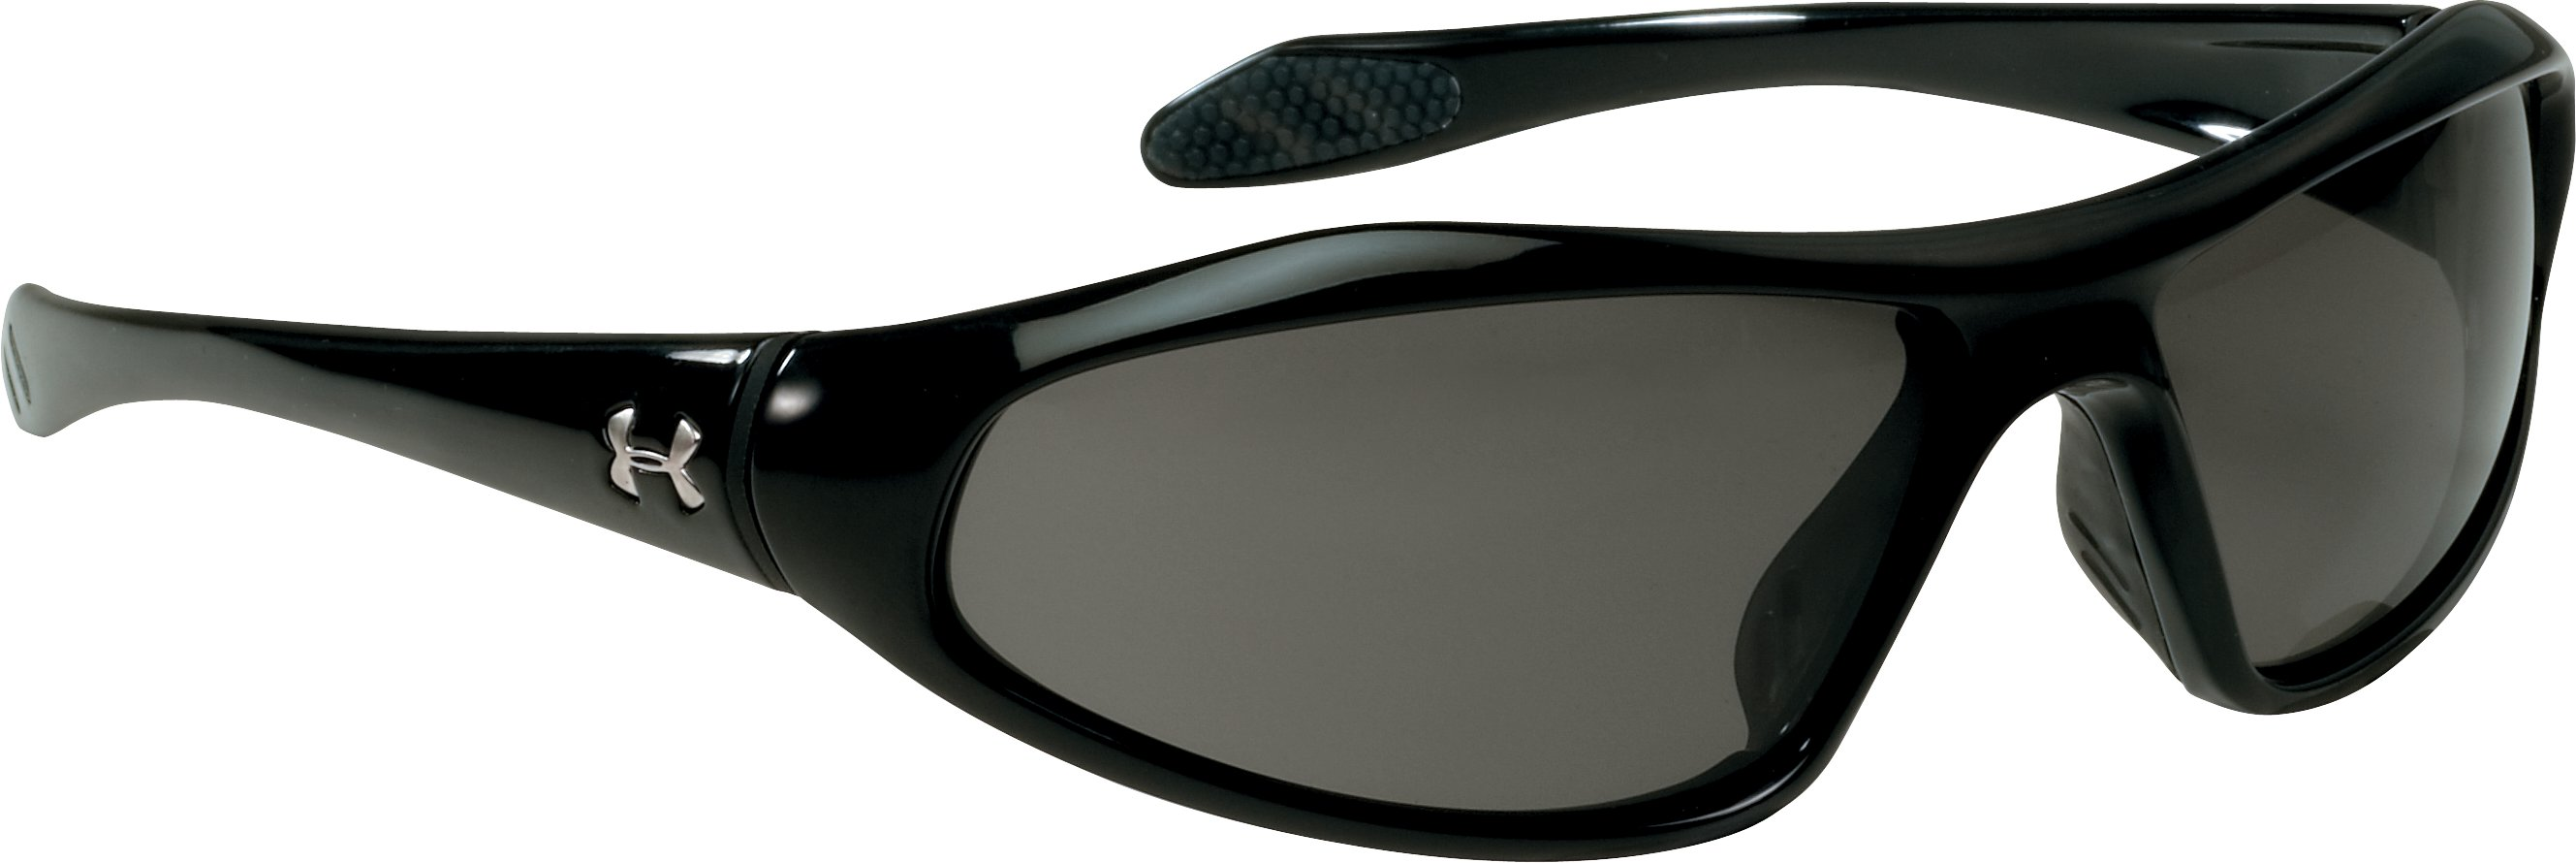 Circuit Sunglasses, Shiny Black